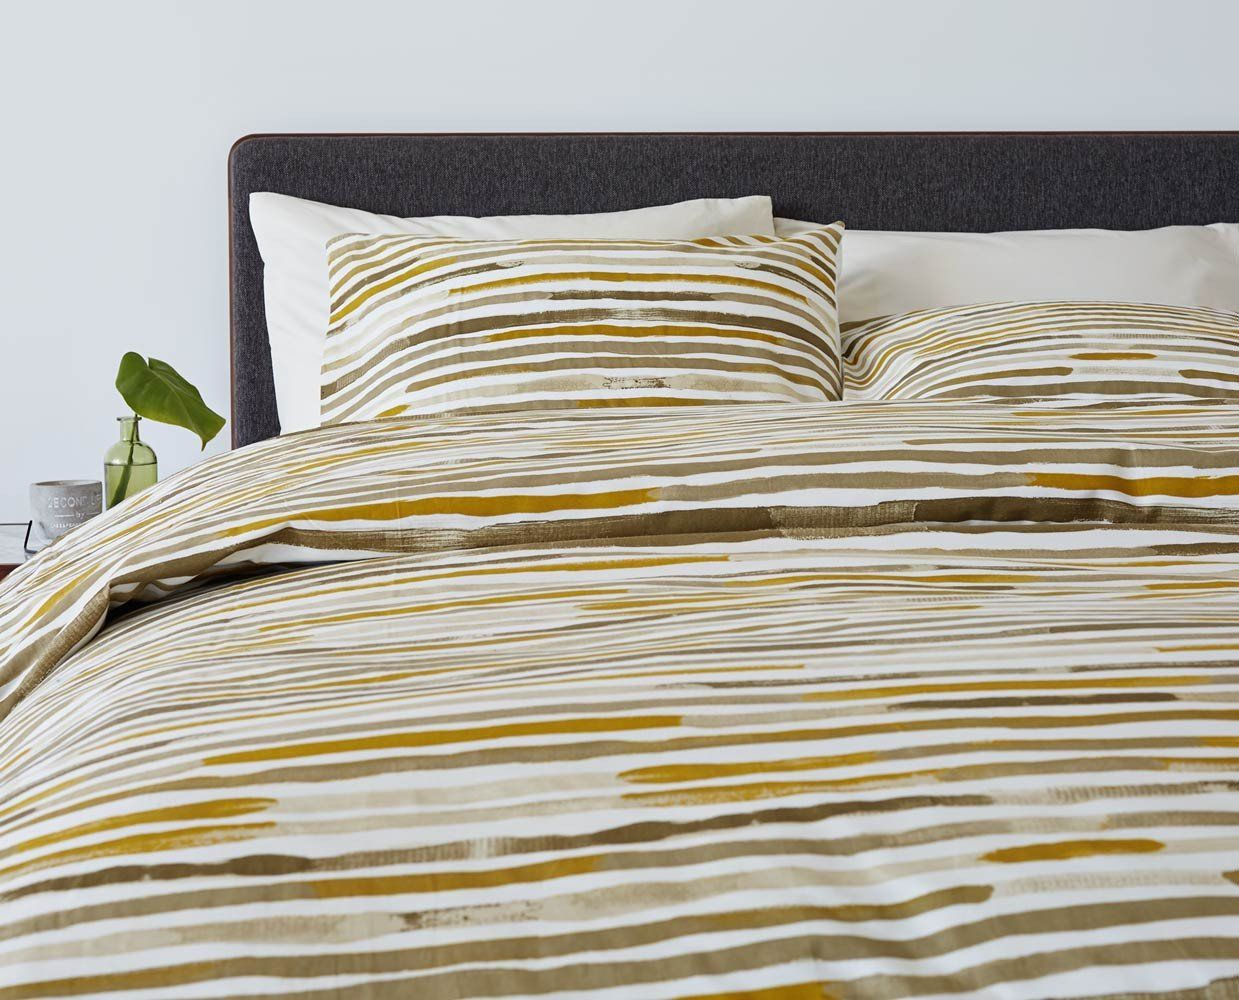 56953c40553f9 Kanon Bedding Set - Yellow by Dania Furniture. The Kanon duvet cover serves  as a blank canvas embellished with horizontal brushstrokes in muted  neutrals ...